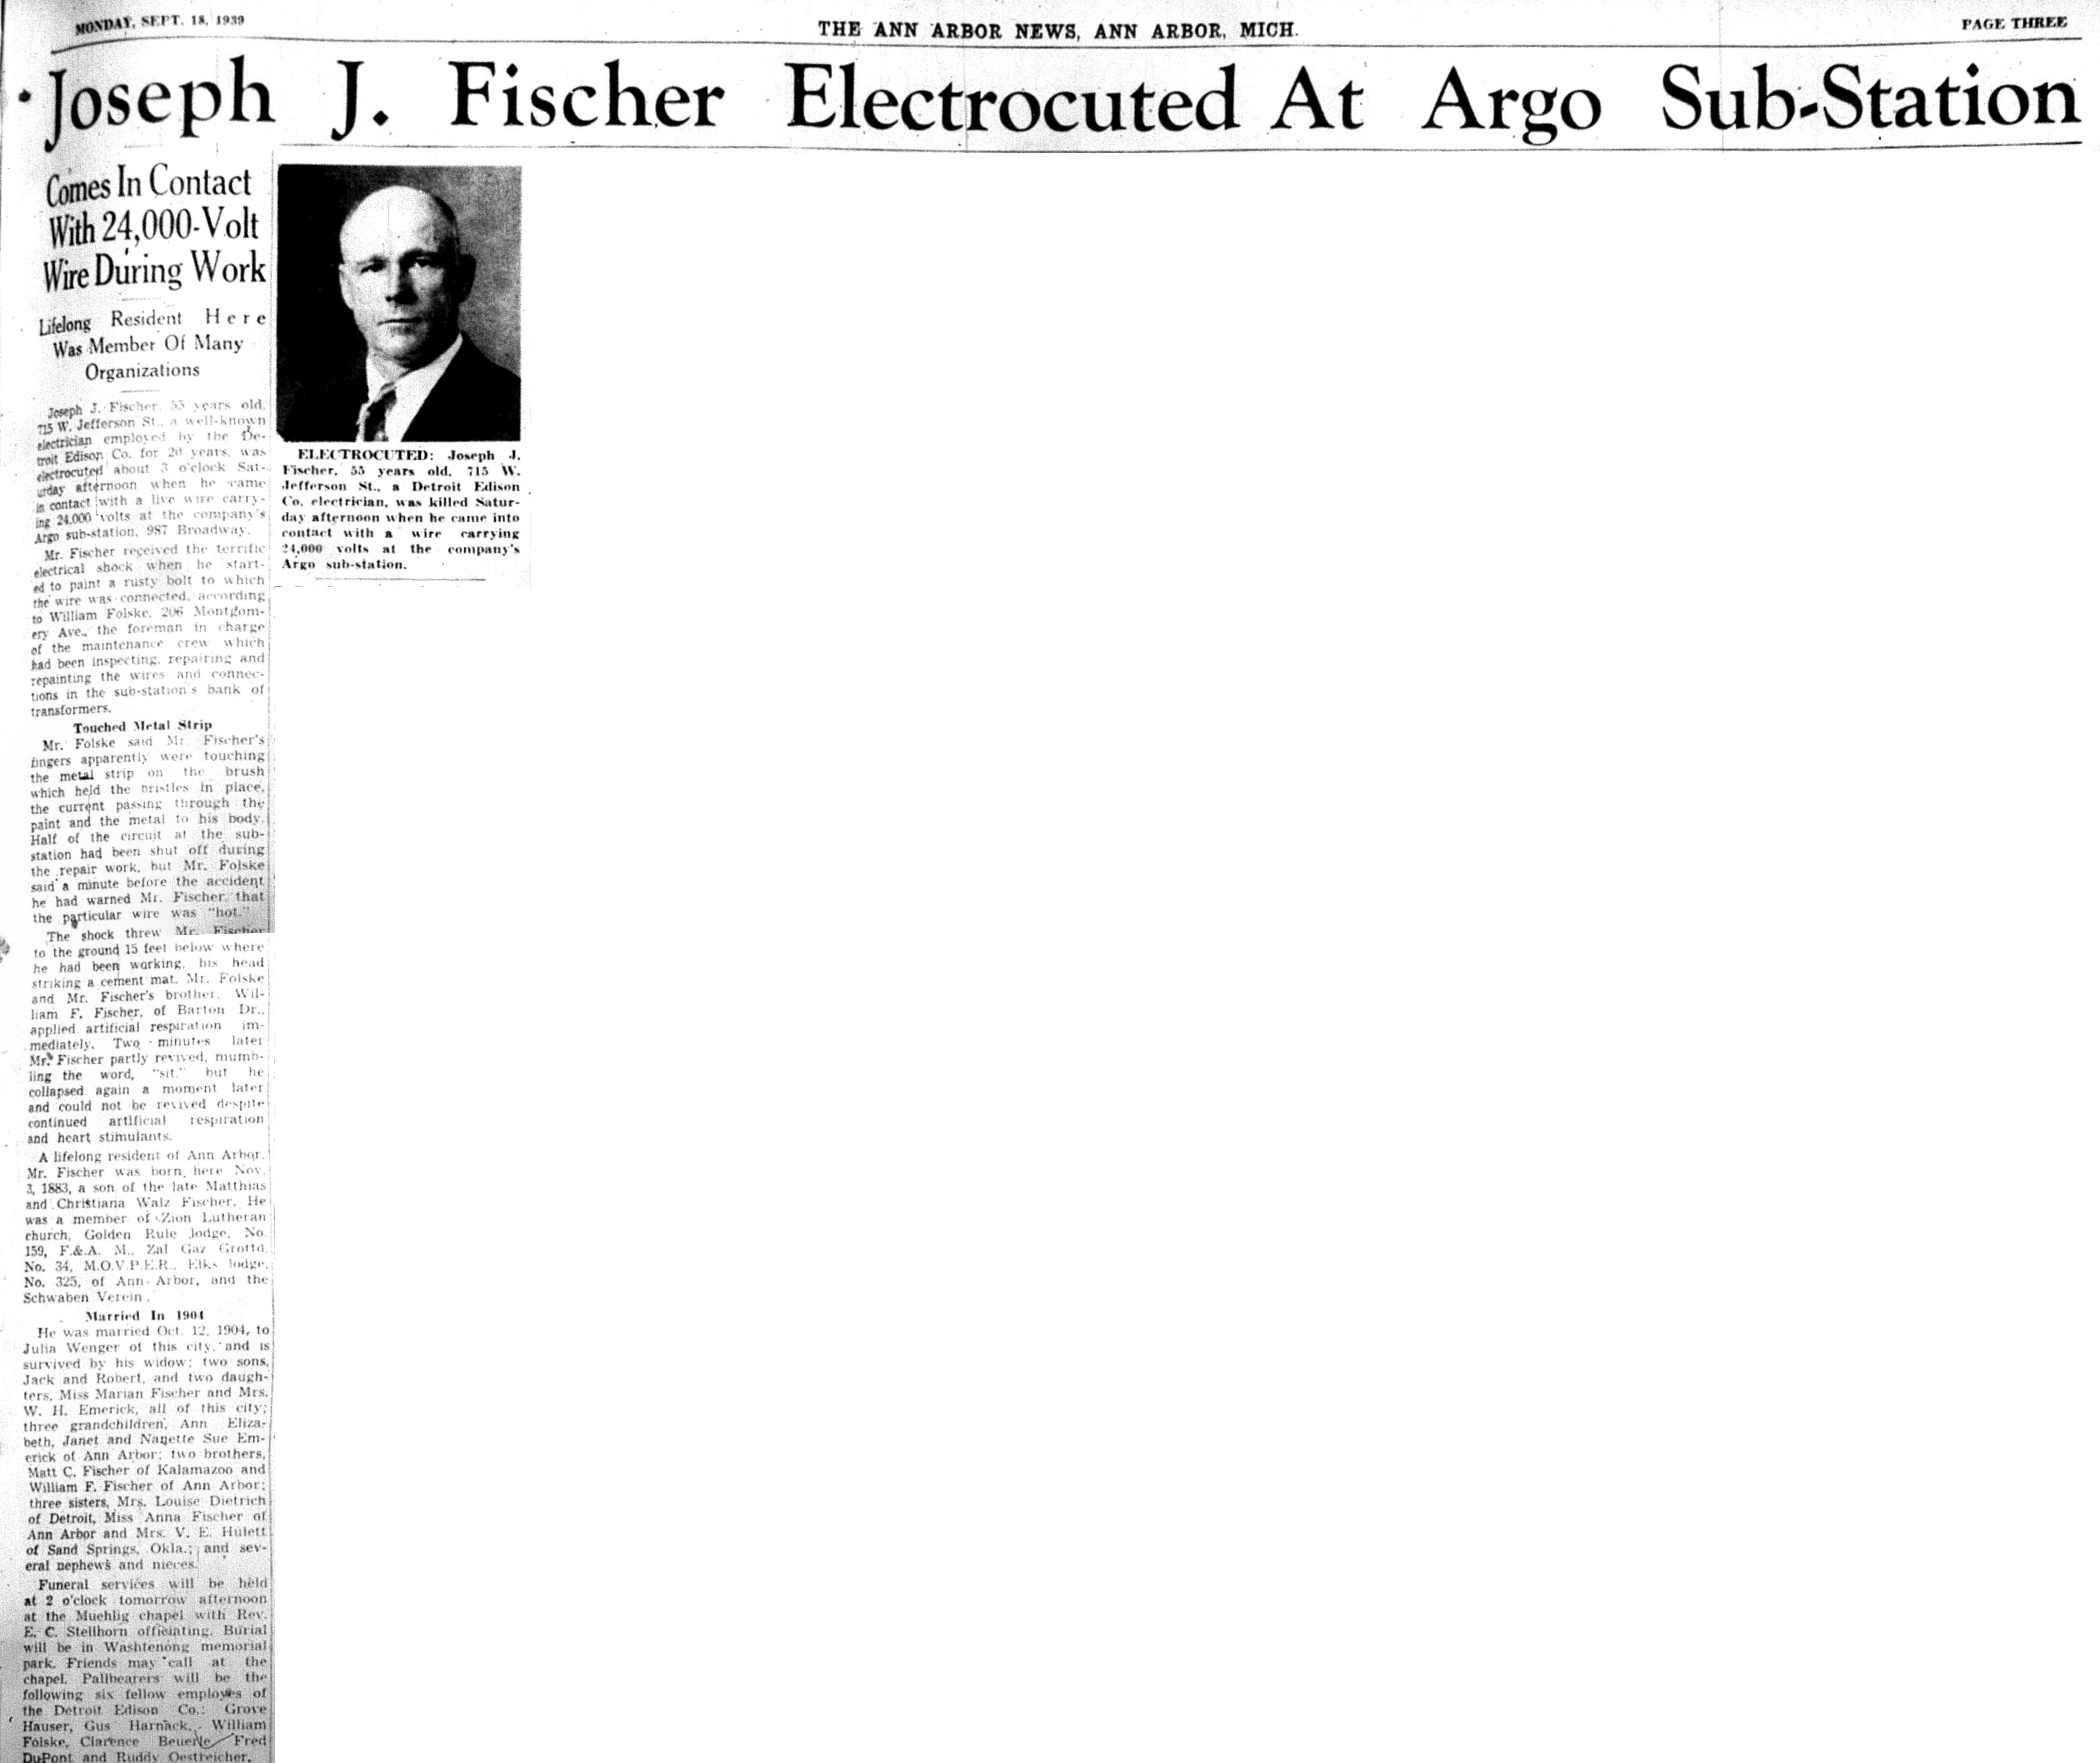 Joseph J. Fischer Electrocuted At Argo Sub-Station image